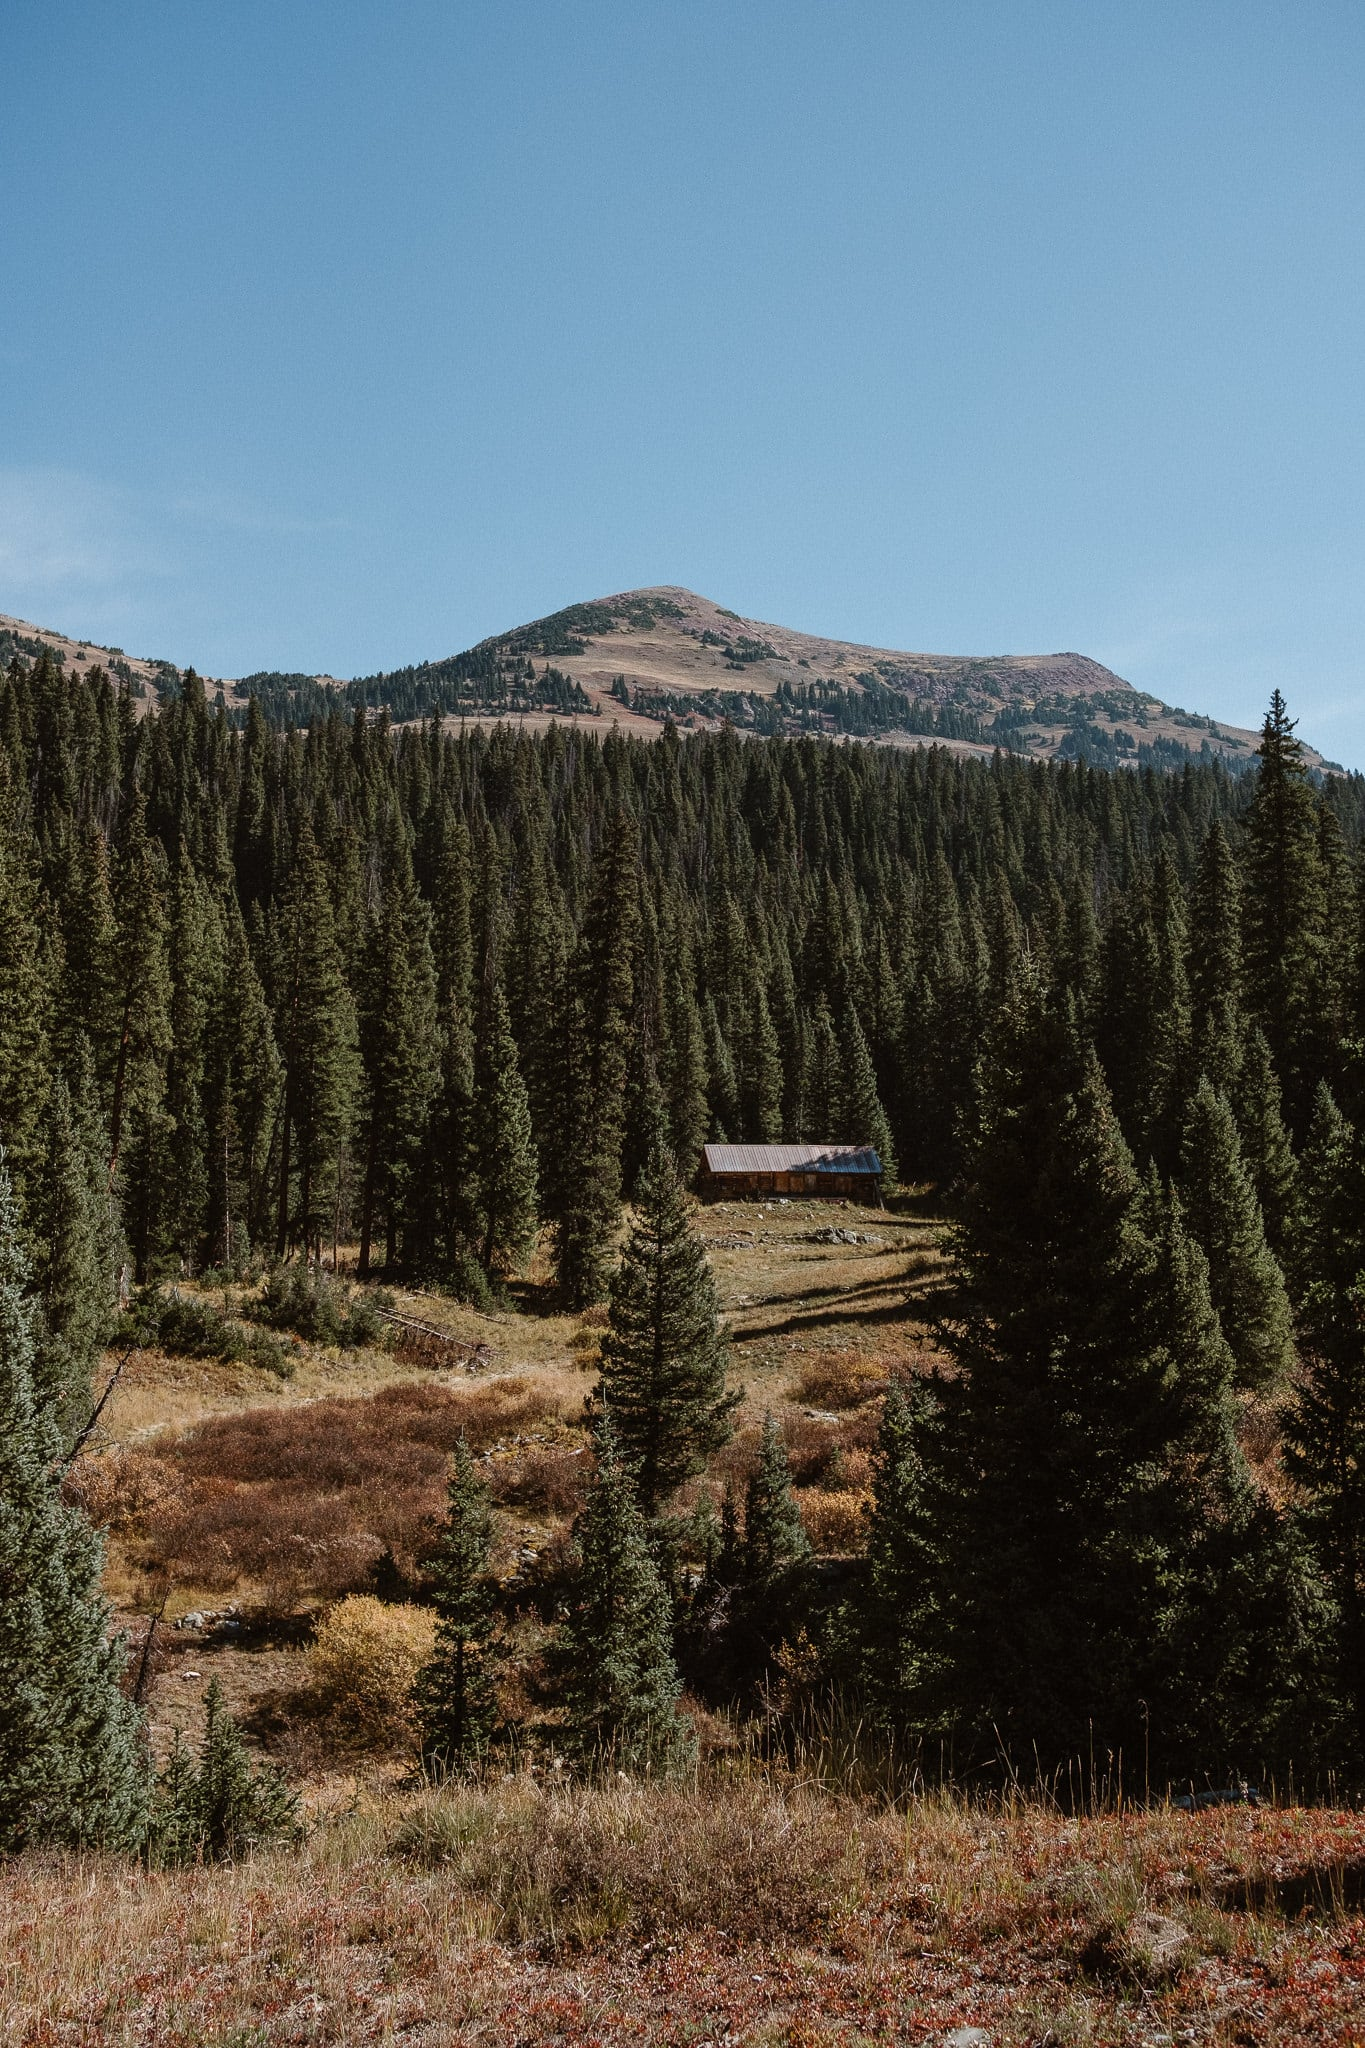 Crested Butte elopement locations, Colorado adventure wedding photographer, mountain elopement views, aspen fall colors, Colorado hikes,